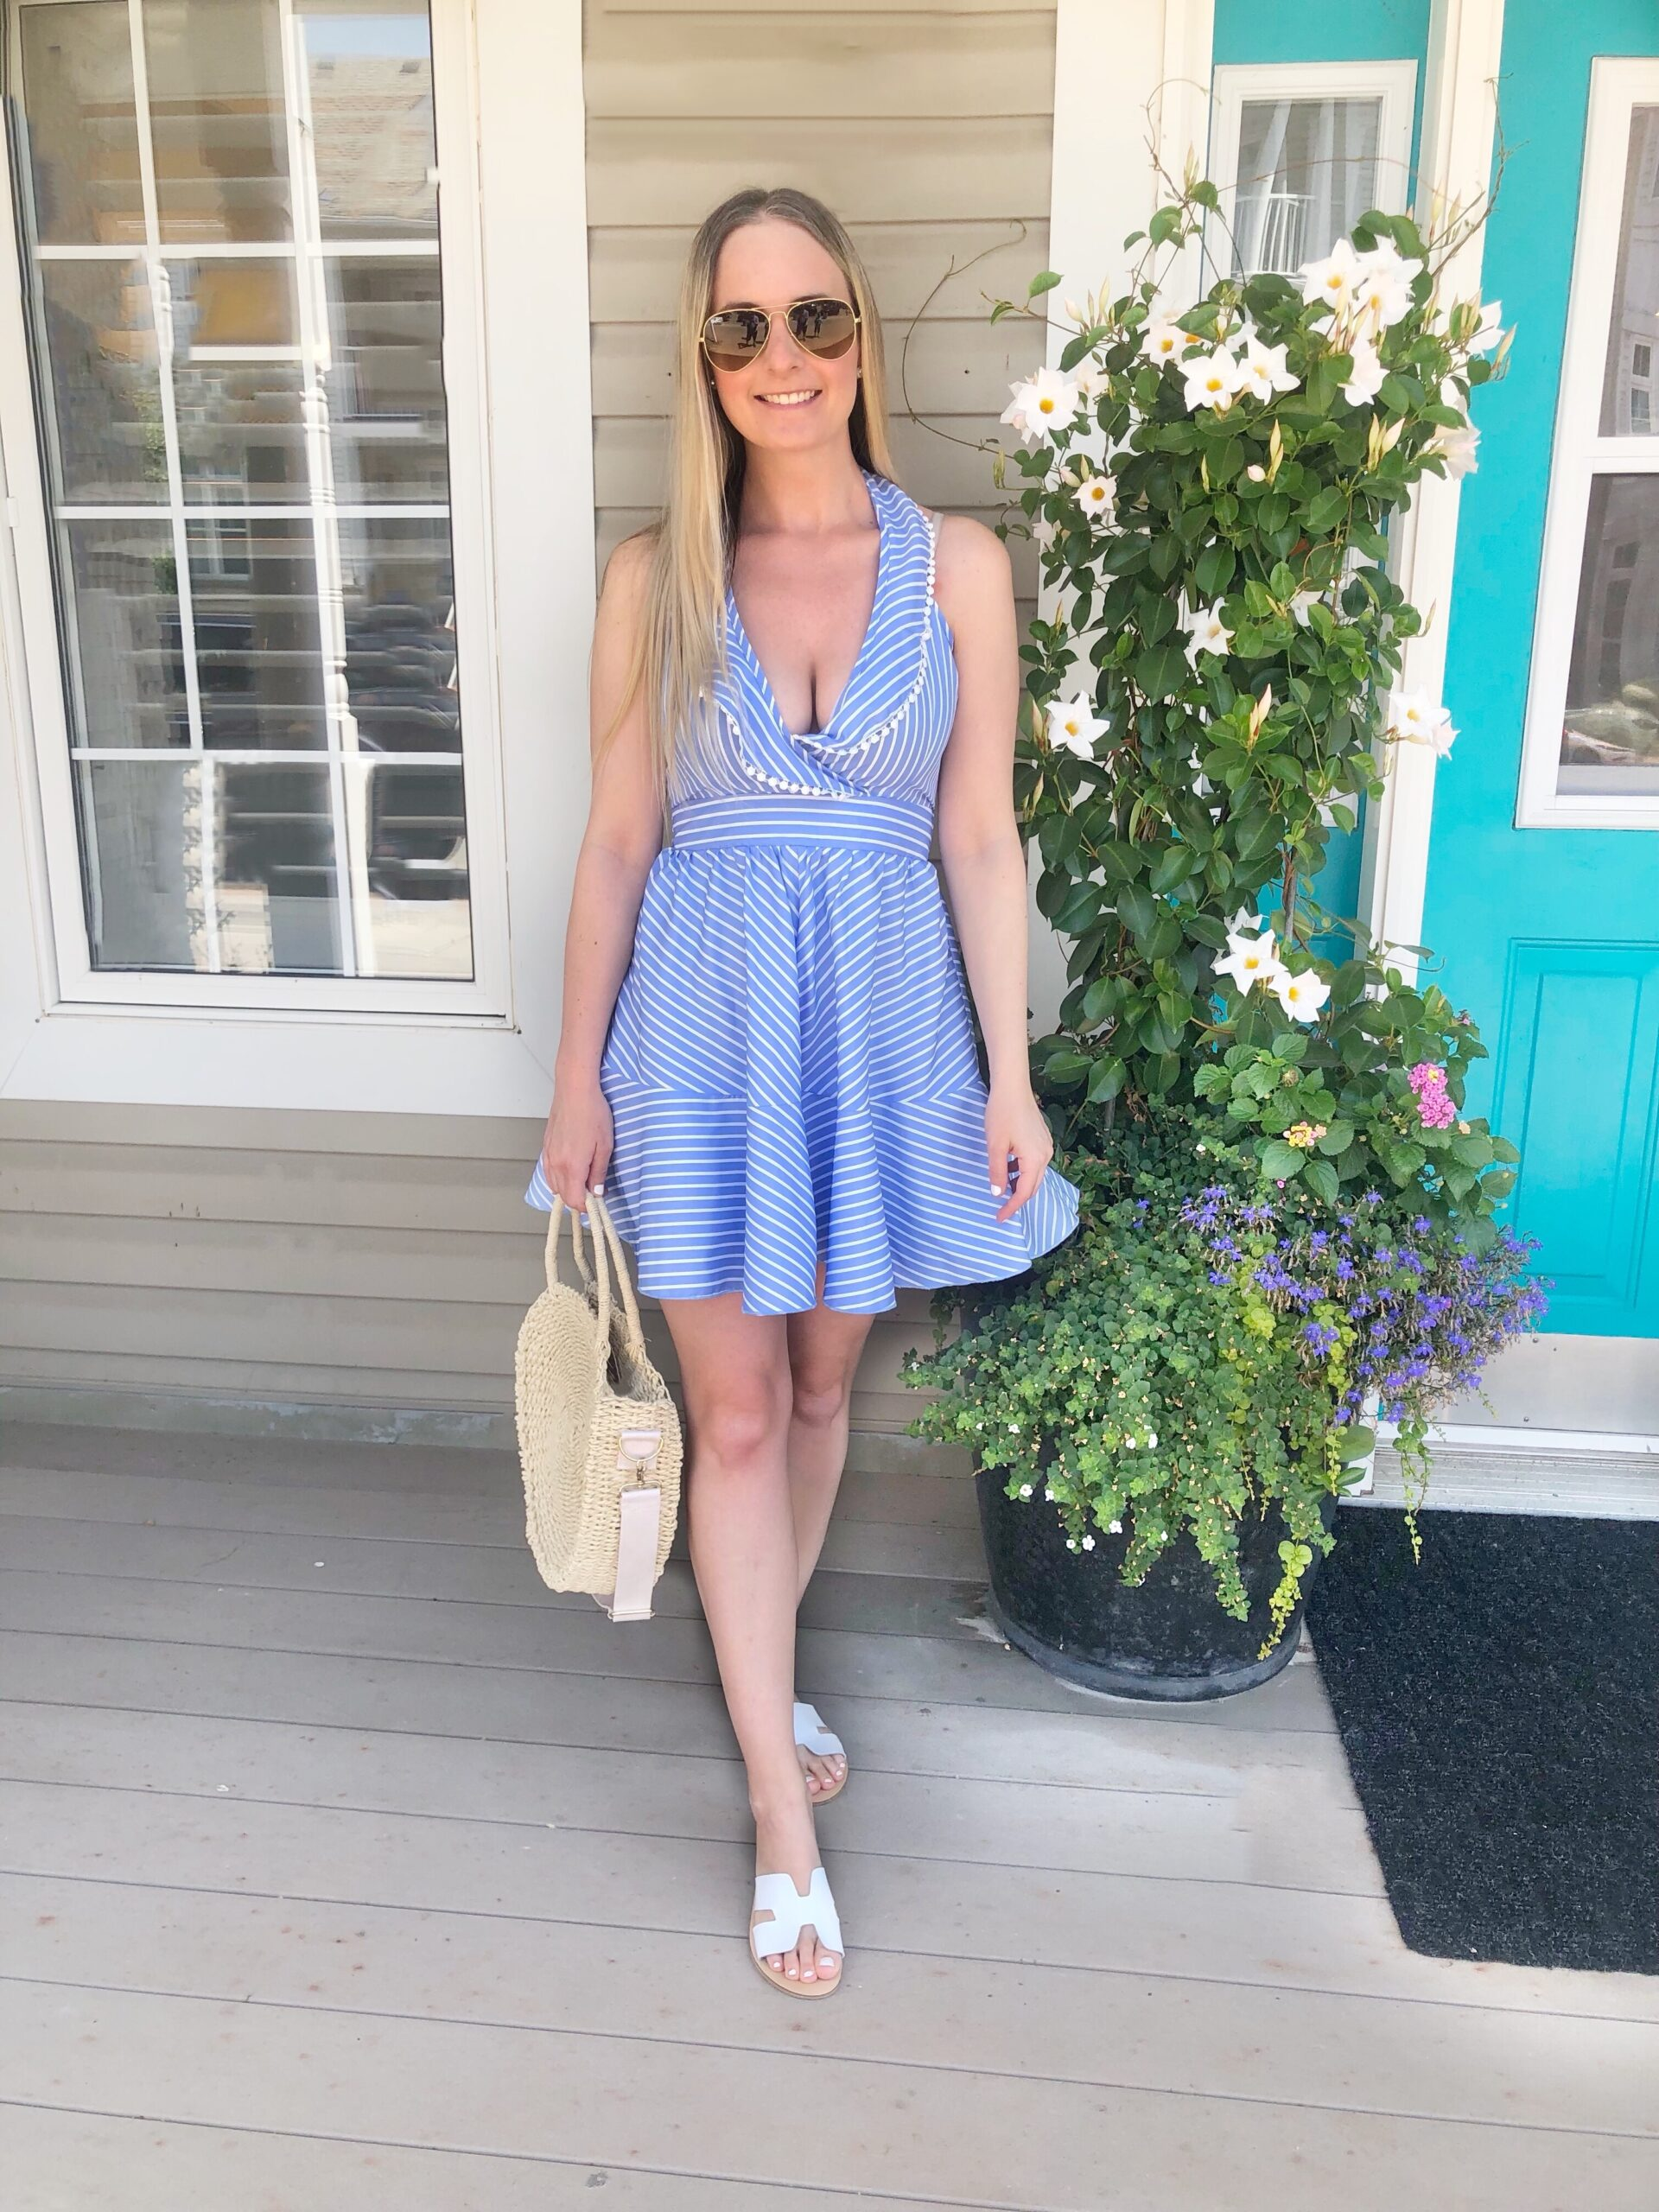 Shein Blue and white ruffle dress on livin' life with style